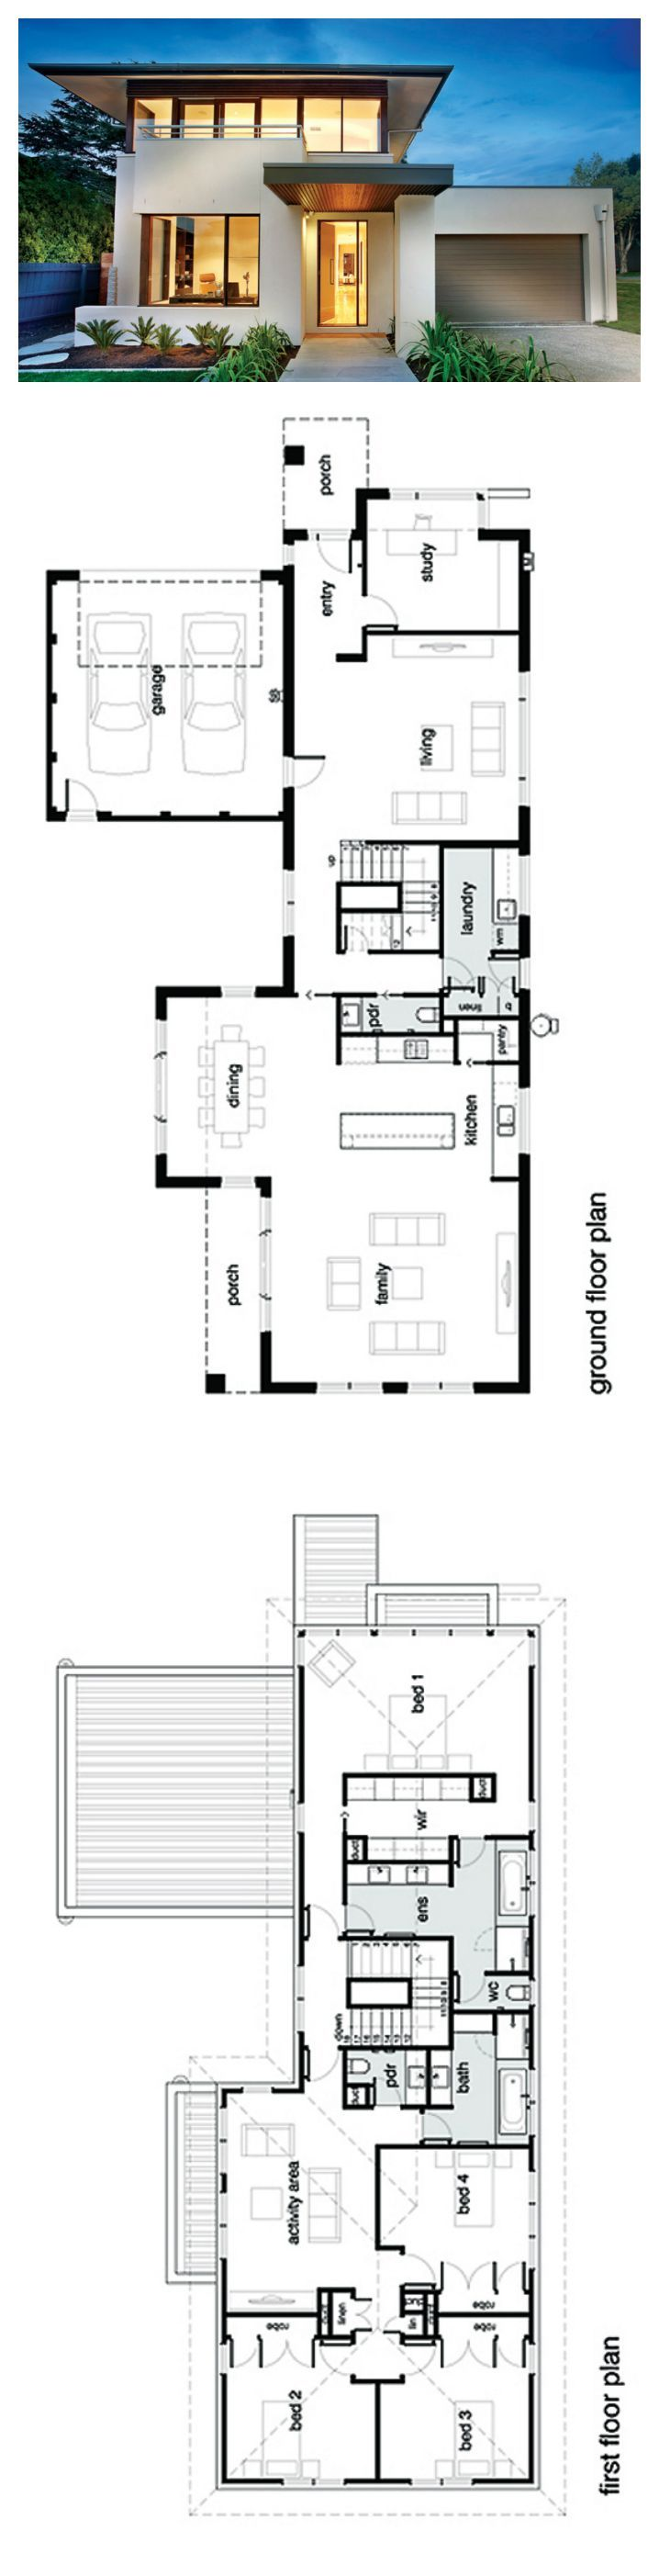 Best 25 modern house plans ideas on pinterest modern for Small modern house plans two floors